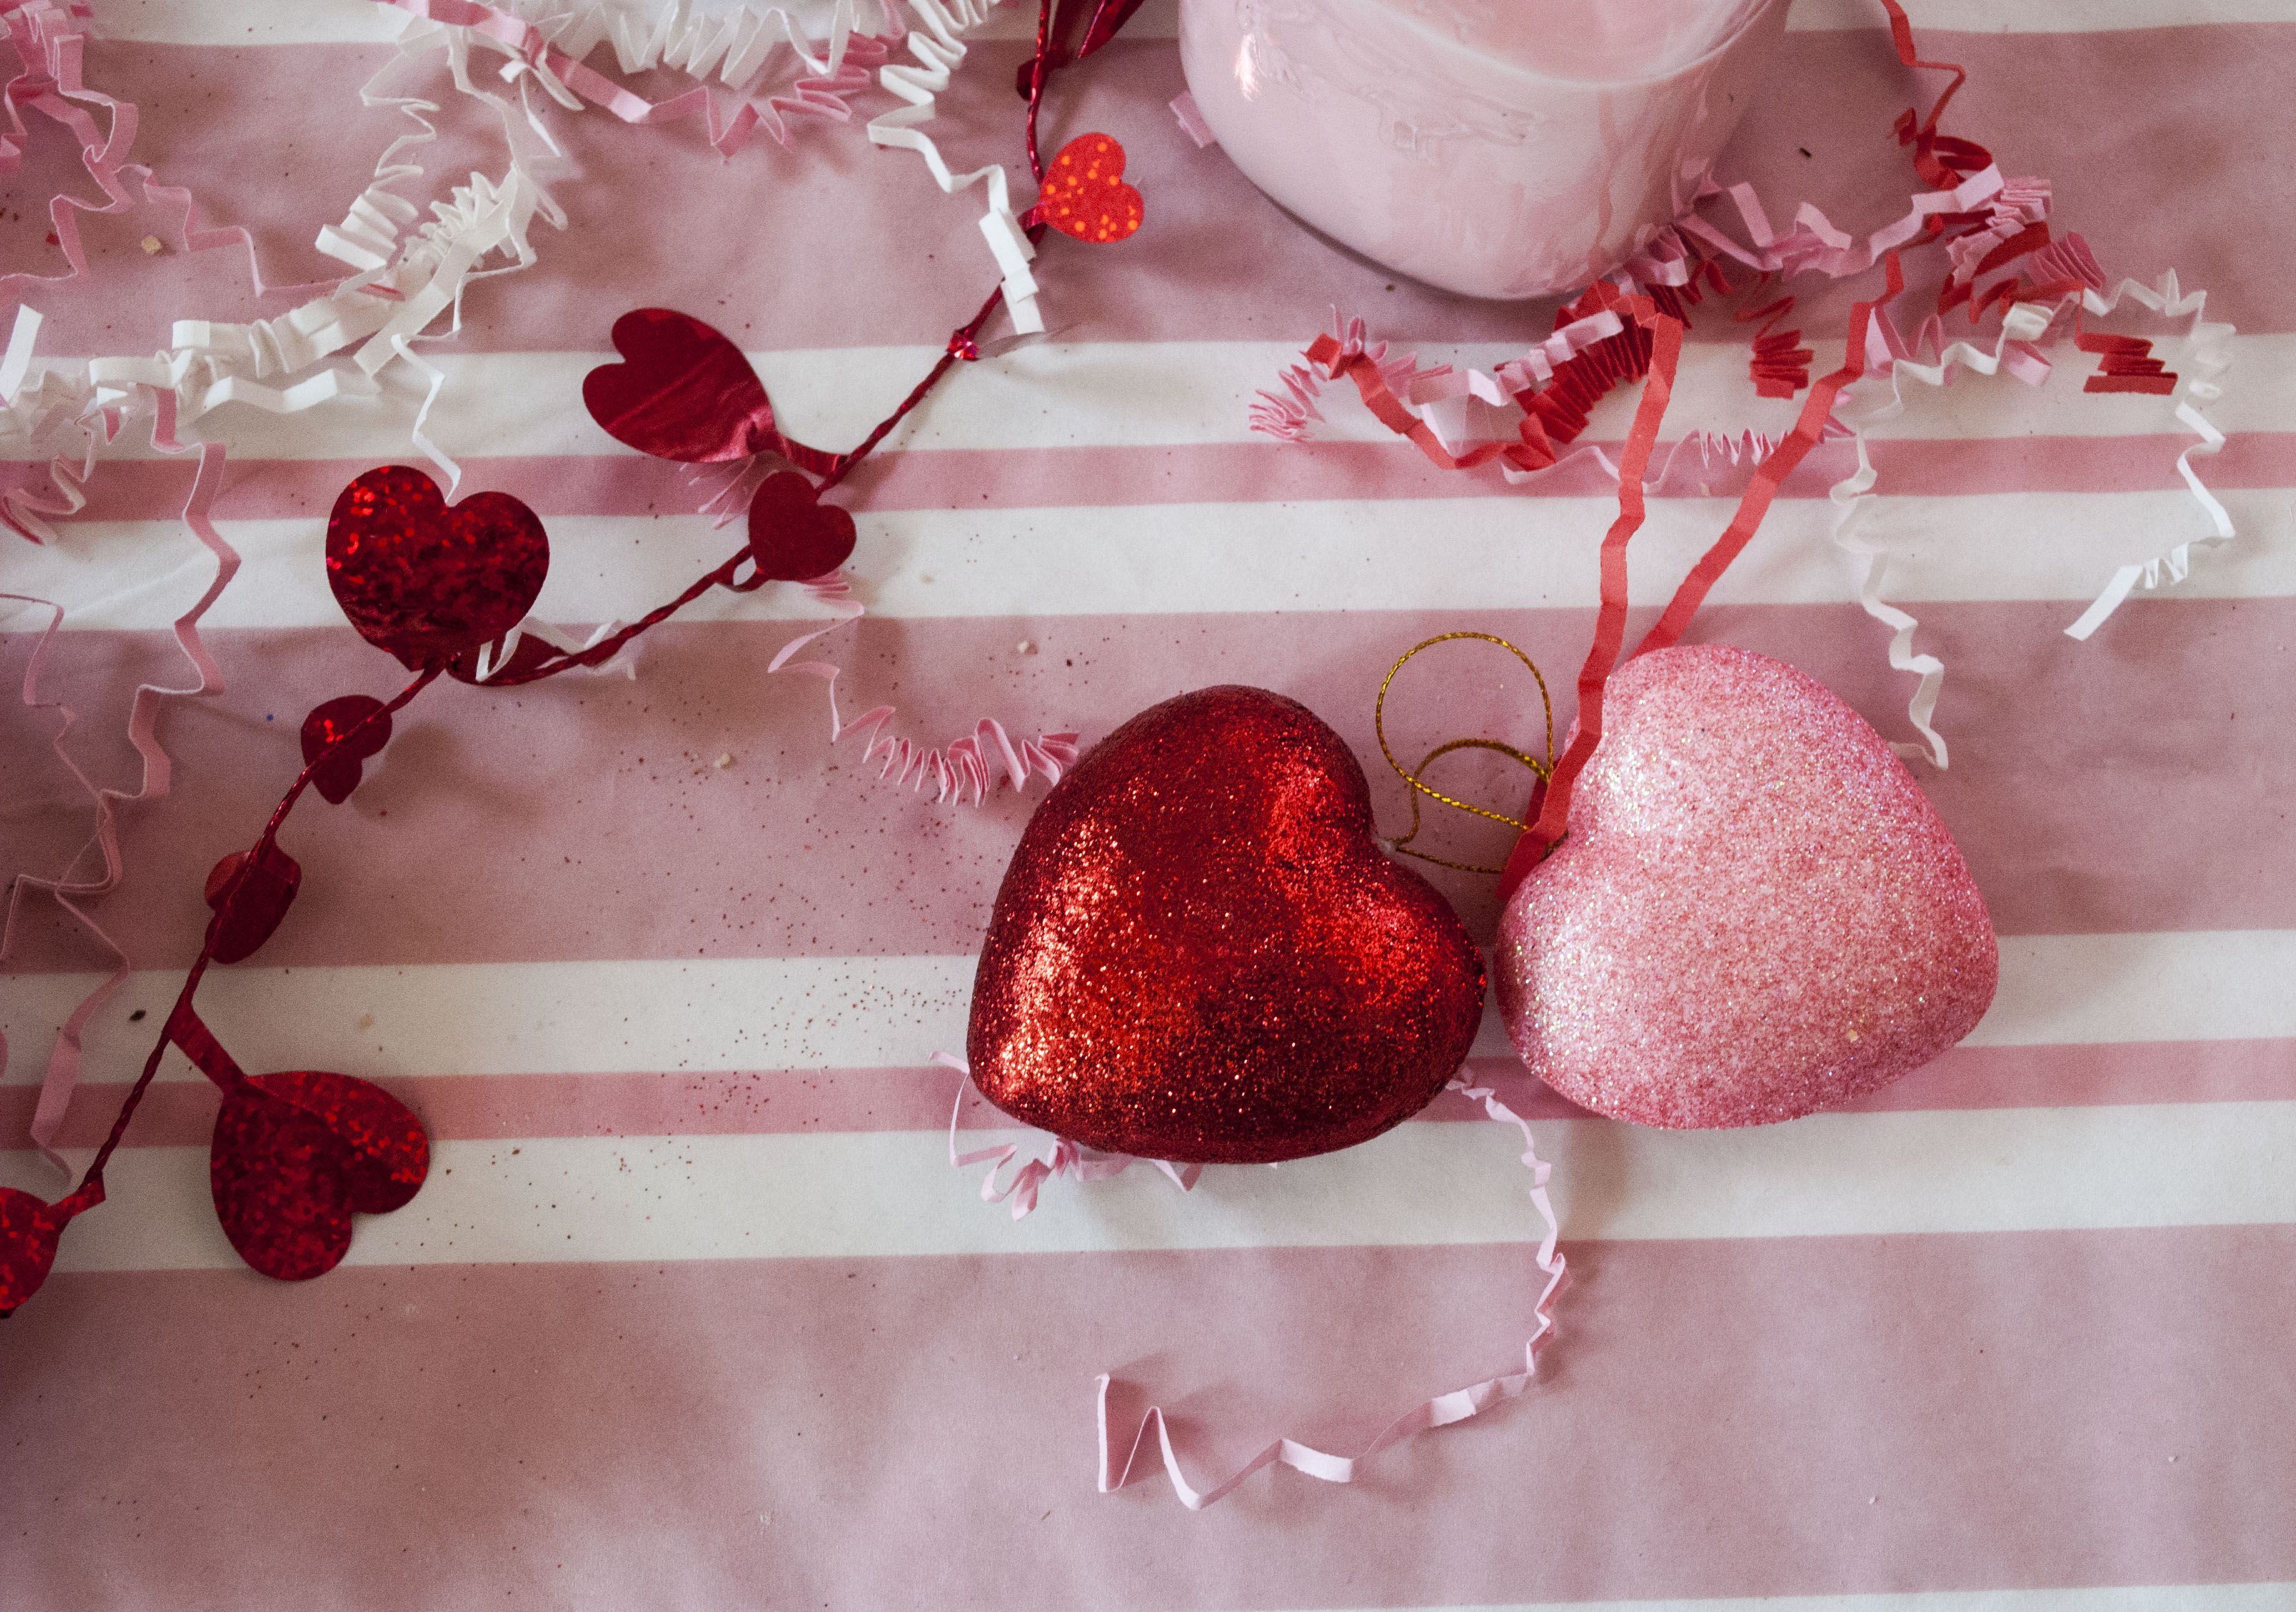 Valentine's Day Dessert Table Display; Decorative Hearts